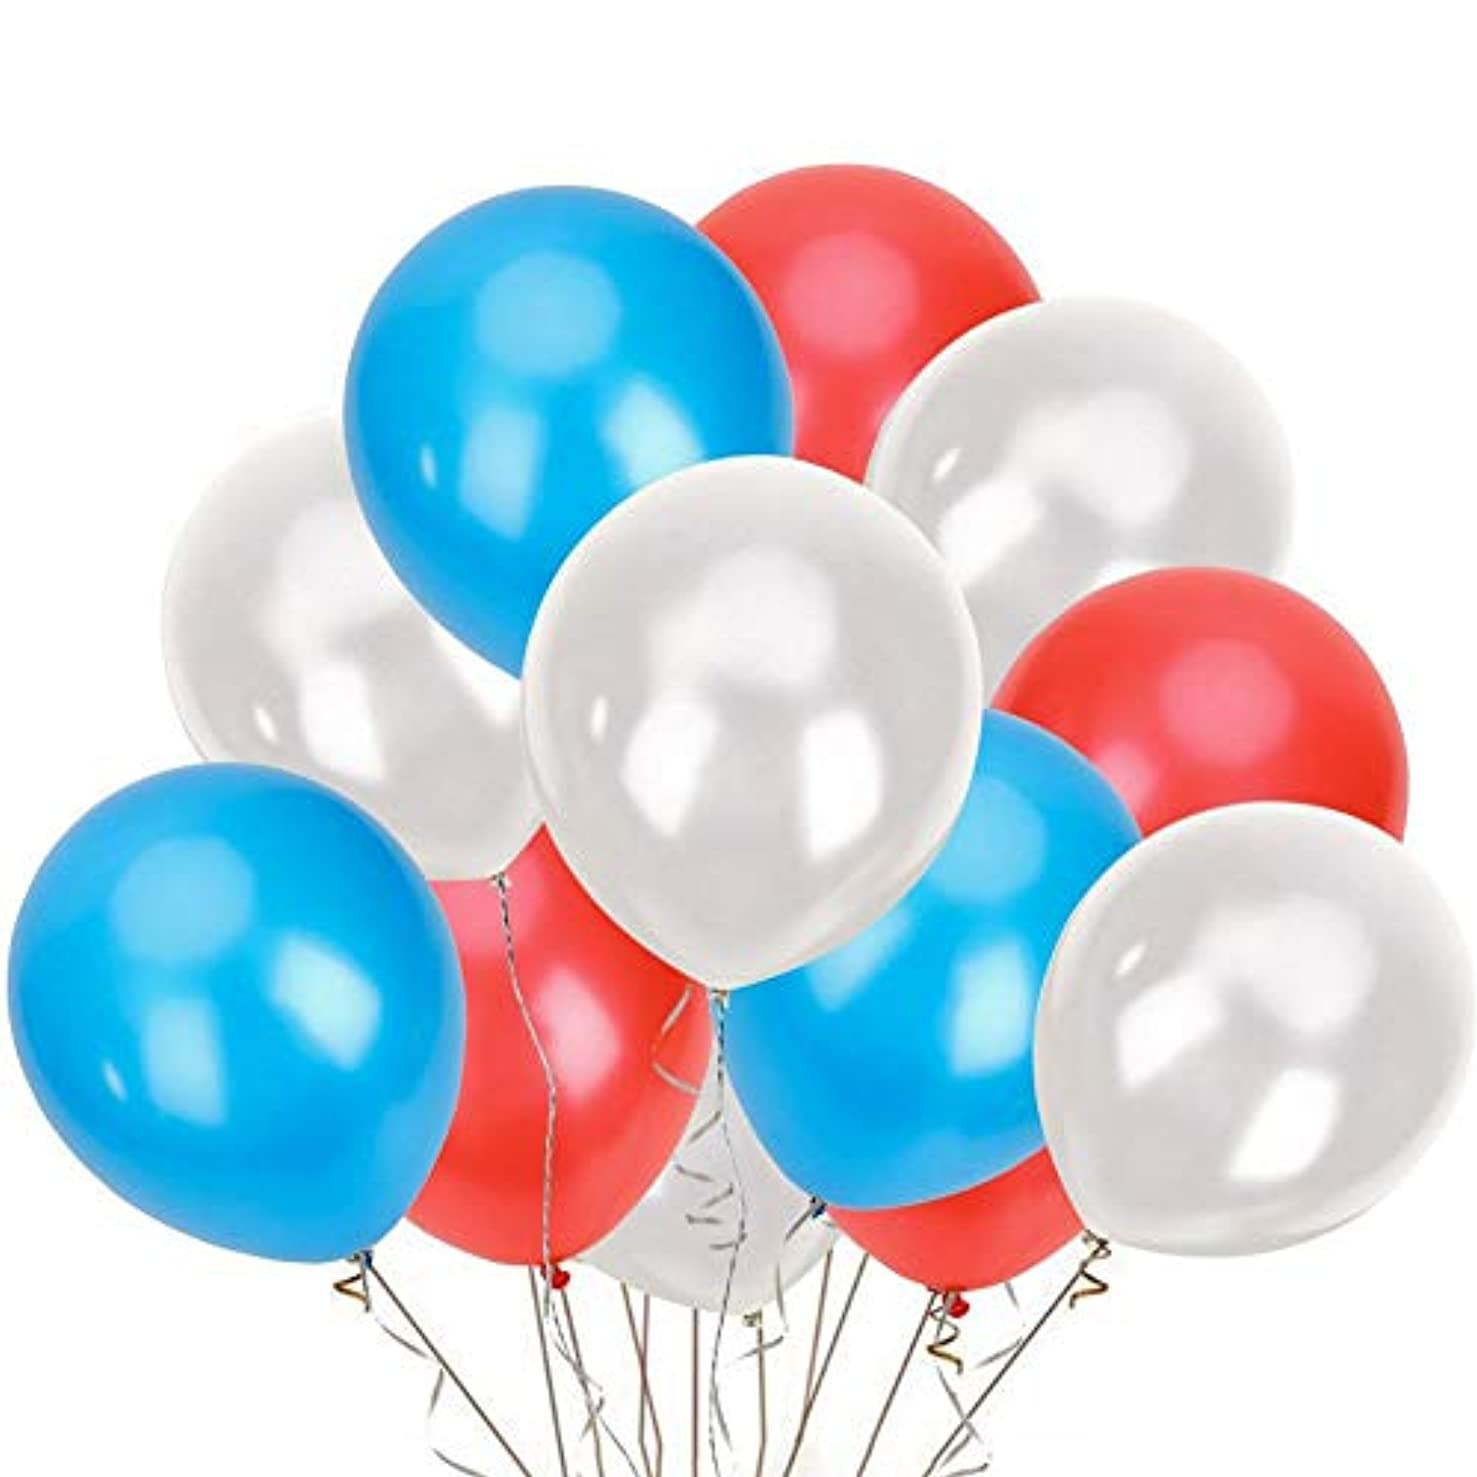 150 Pack 12 inch Patriotic Balloons Pearl Latex Balloon for 4th of July Party Favors American Independence Day Party Supplies Decorations